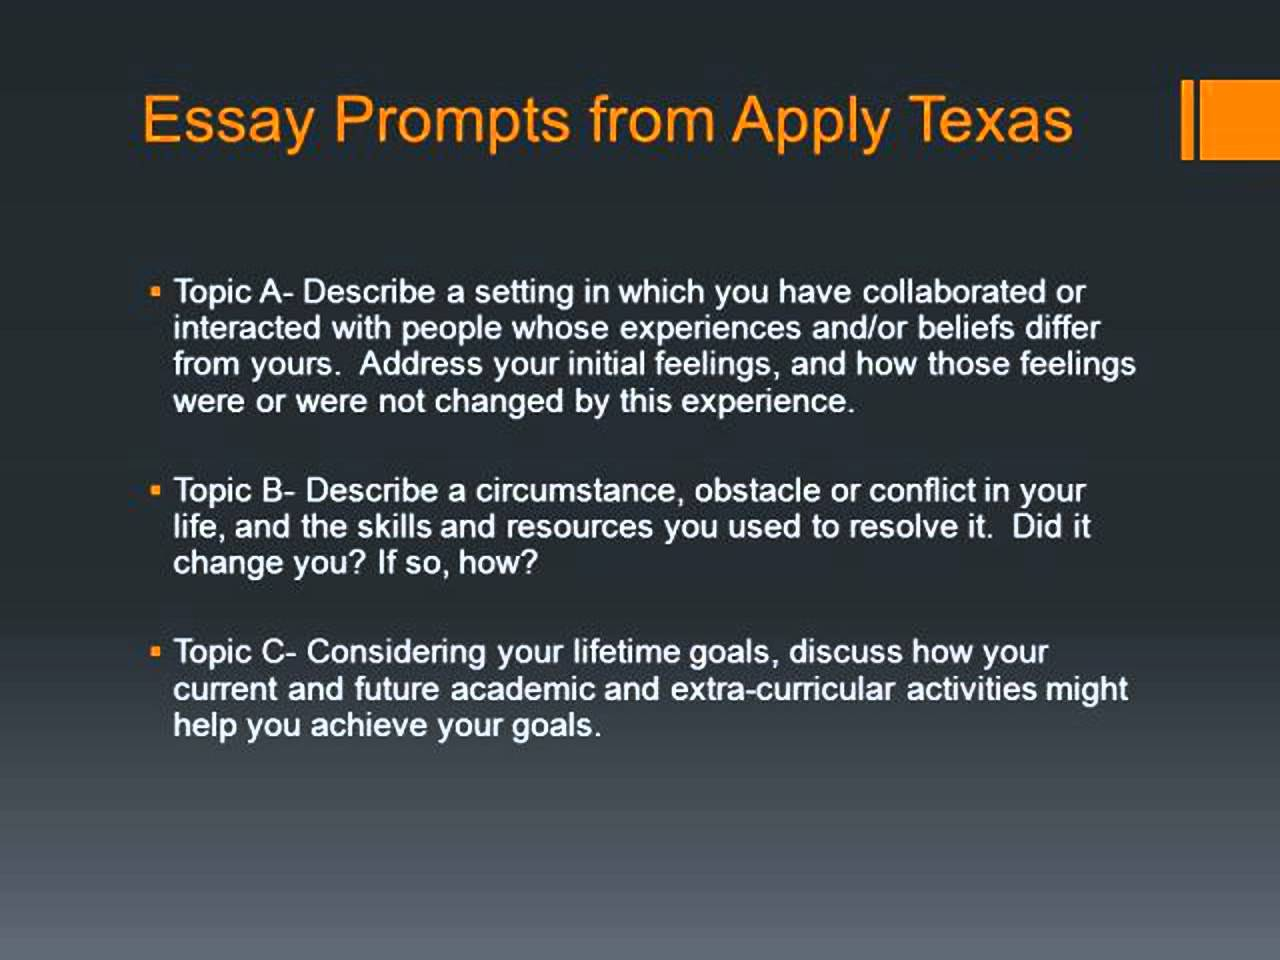 002 Essay Example Apply Texas Prompts Youtube Topic Examples Top A B And C Full